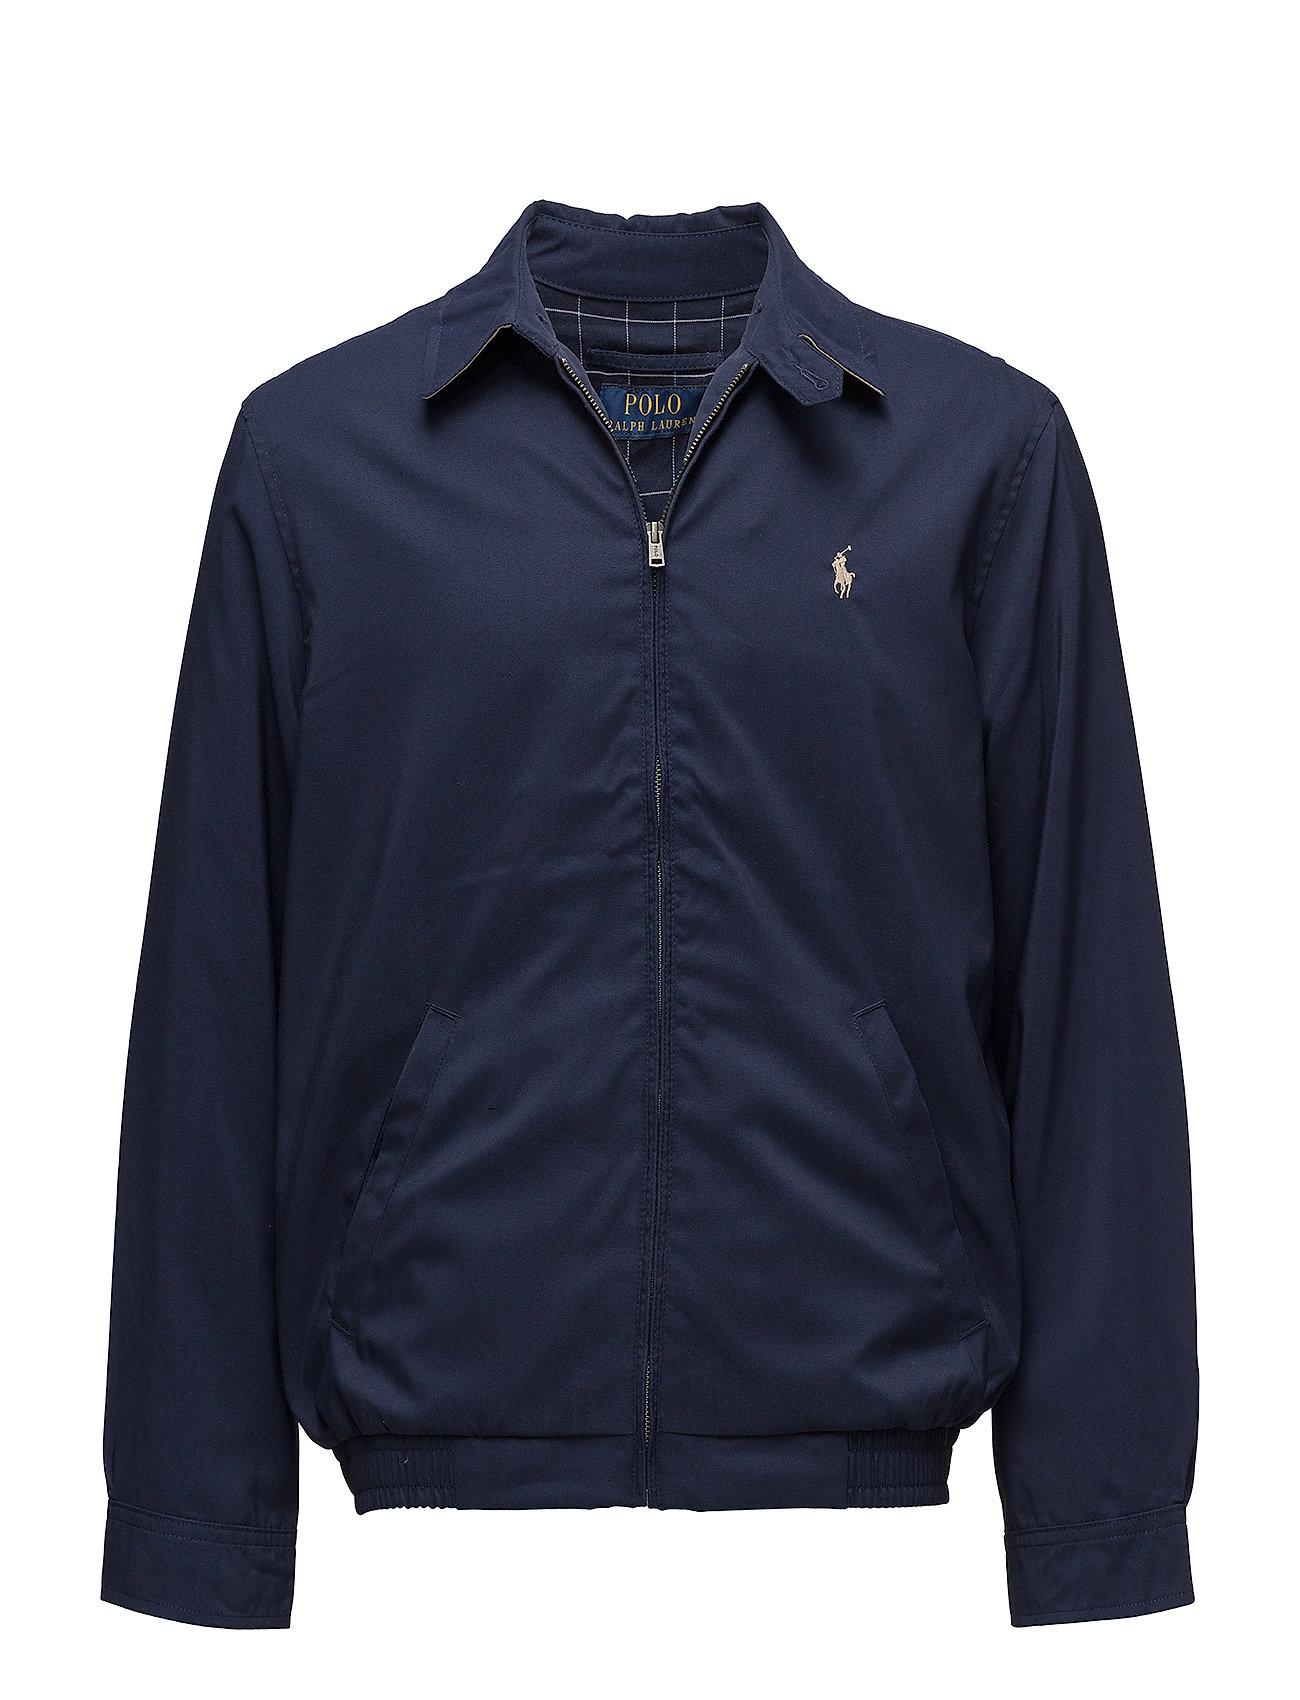 Polo Ralph Lauren BI SWING WB (NEW FIT) W/PP - FRENCH NAVY